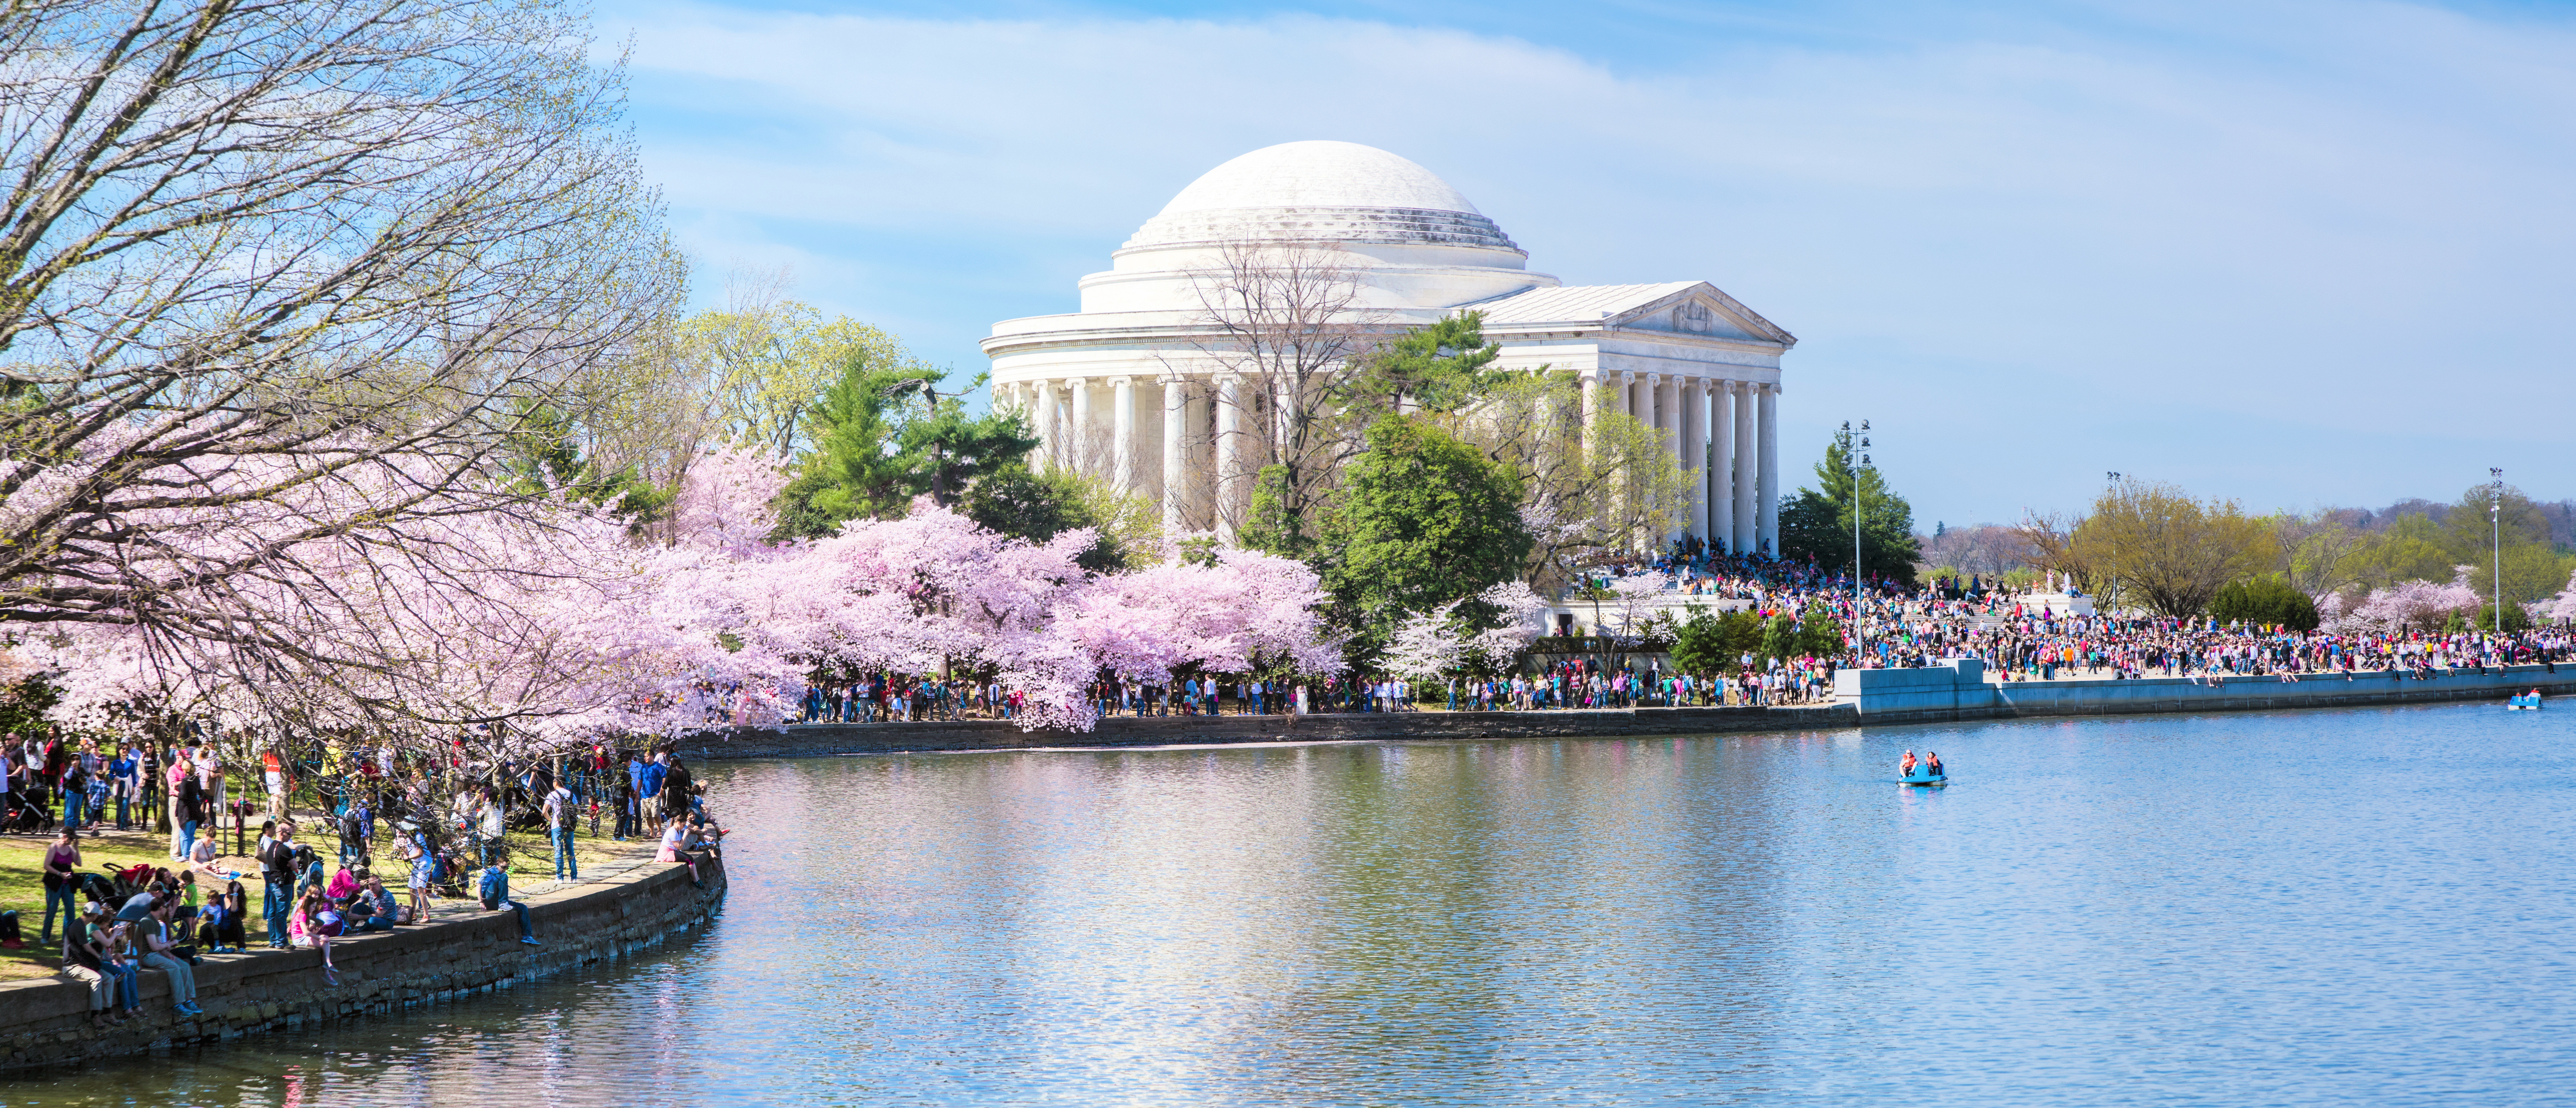 City Lake Monuments water tree sky flower River waterside Nature cherry blossom waterway blossom colored